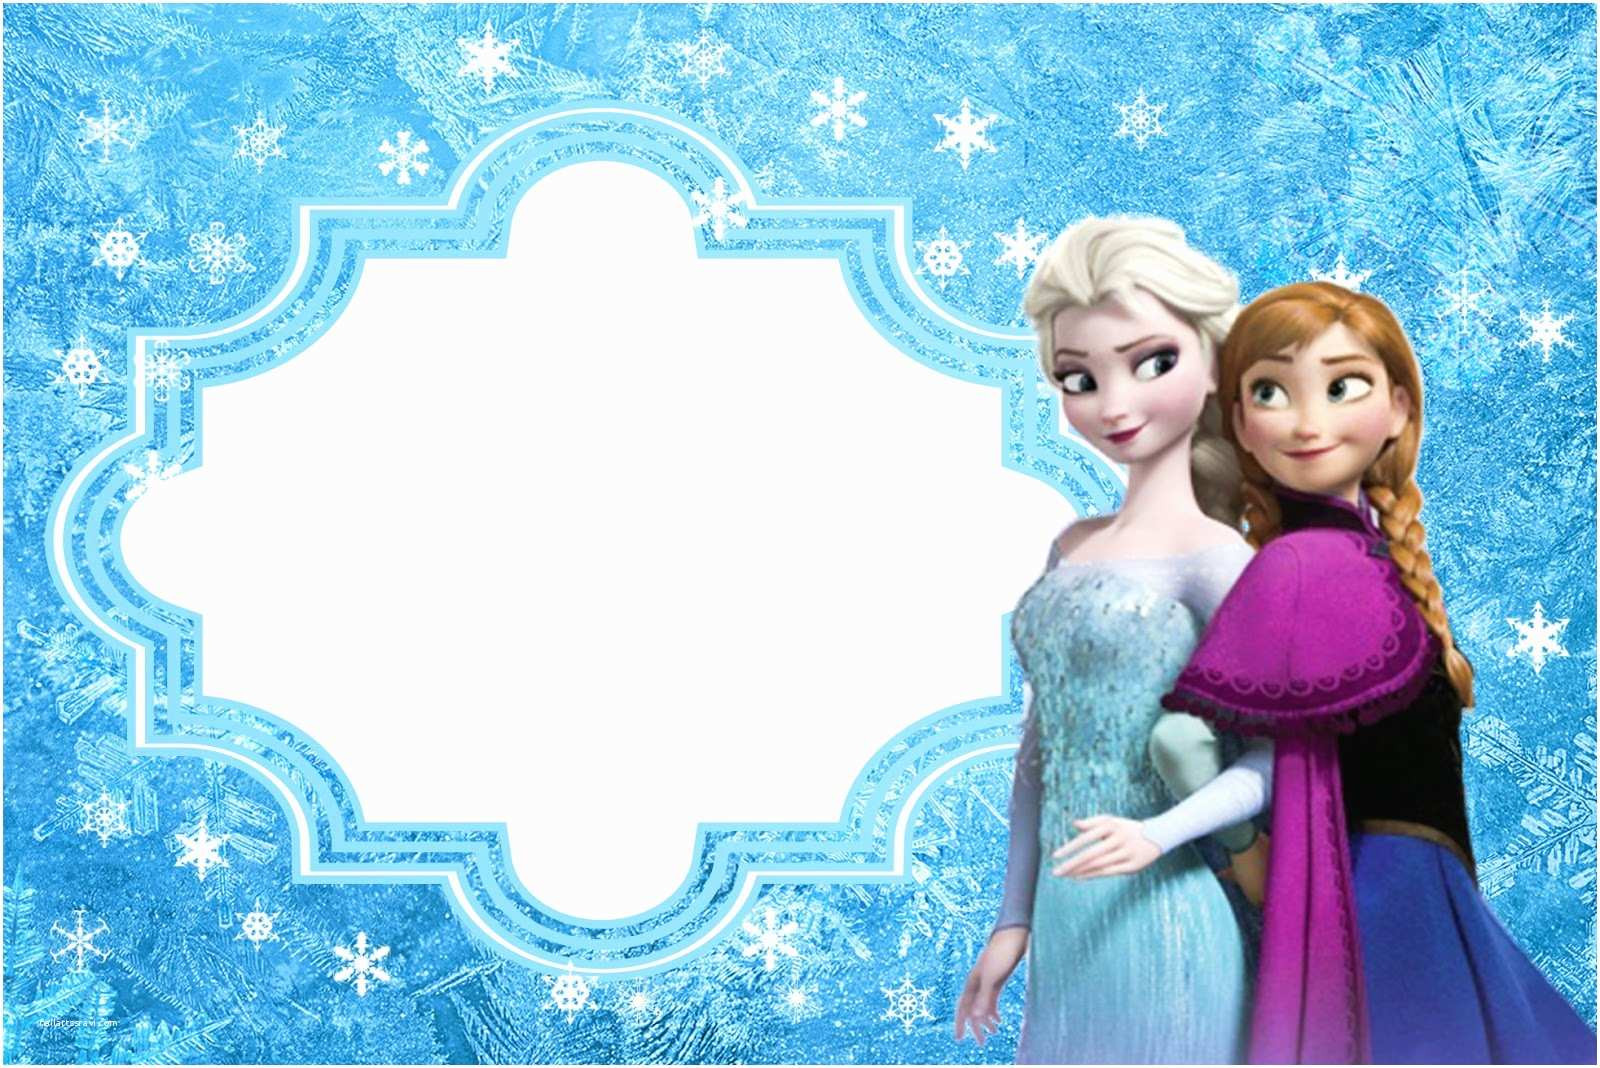 Frozen Invitations Printable Free Frozen Birthday Invitations Frozen Free Printable Cards or